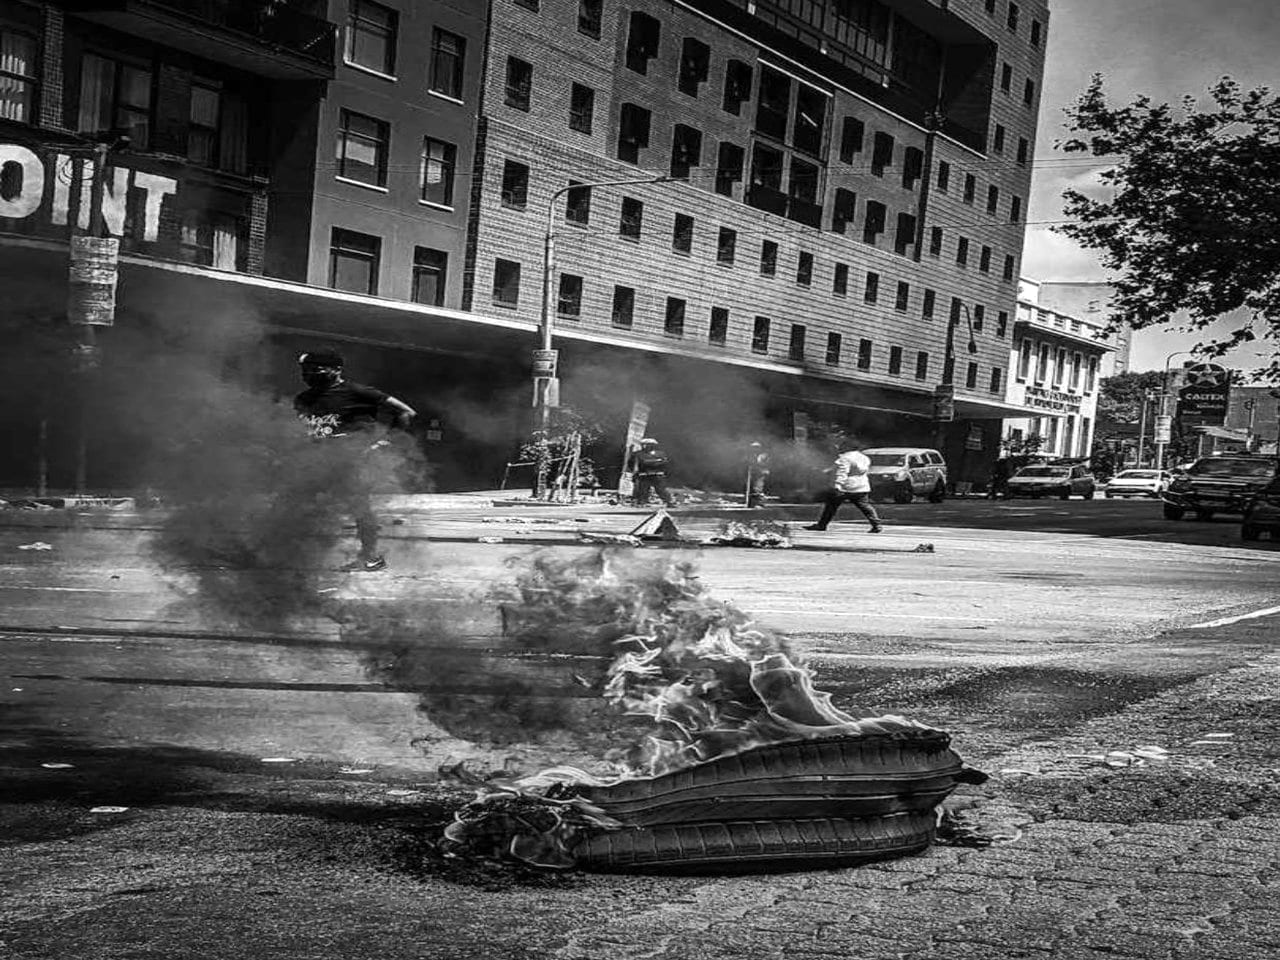 Chaos erupts in Johannesburg streets following student protest for financial inclusion